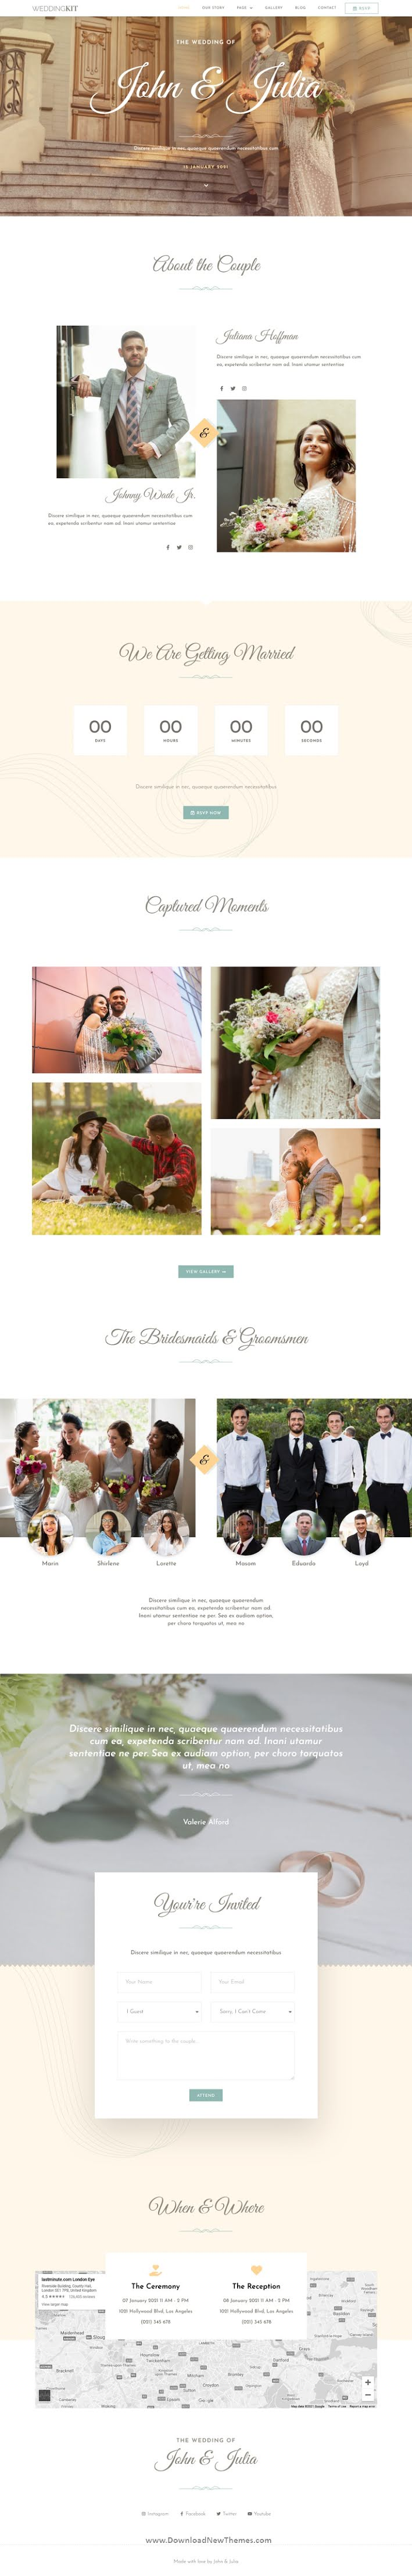 Invite and Gallery Event Elementor Template Kit